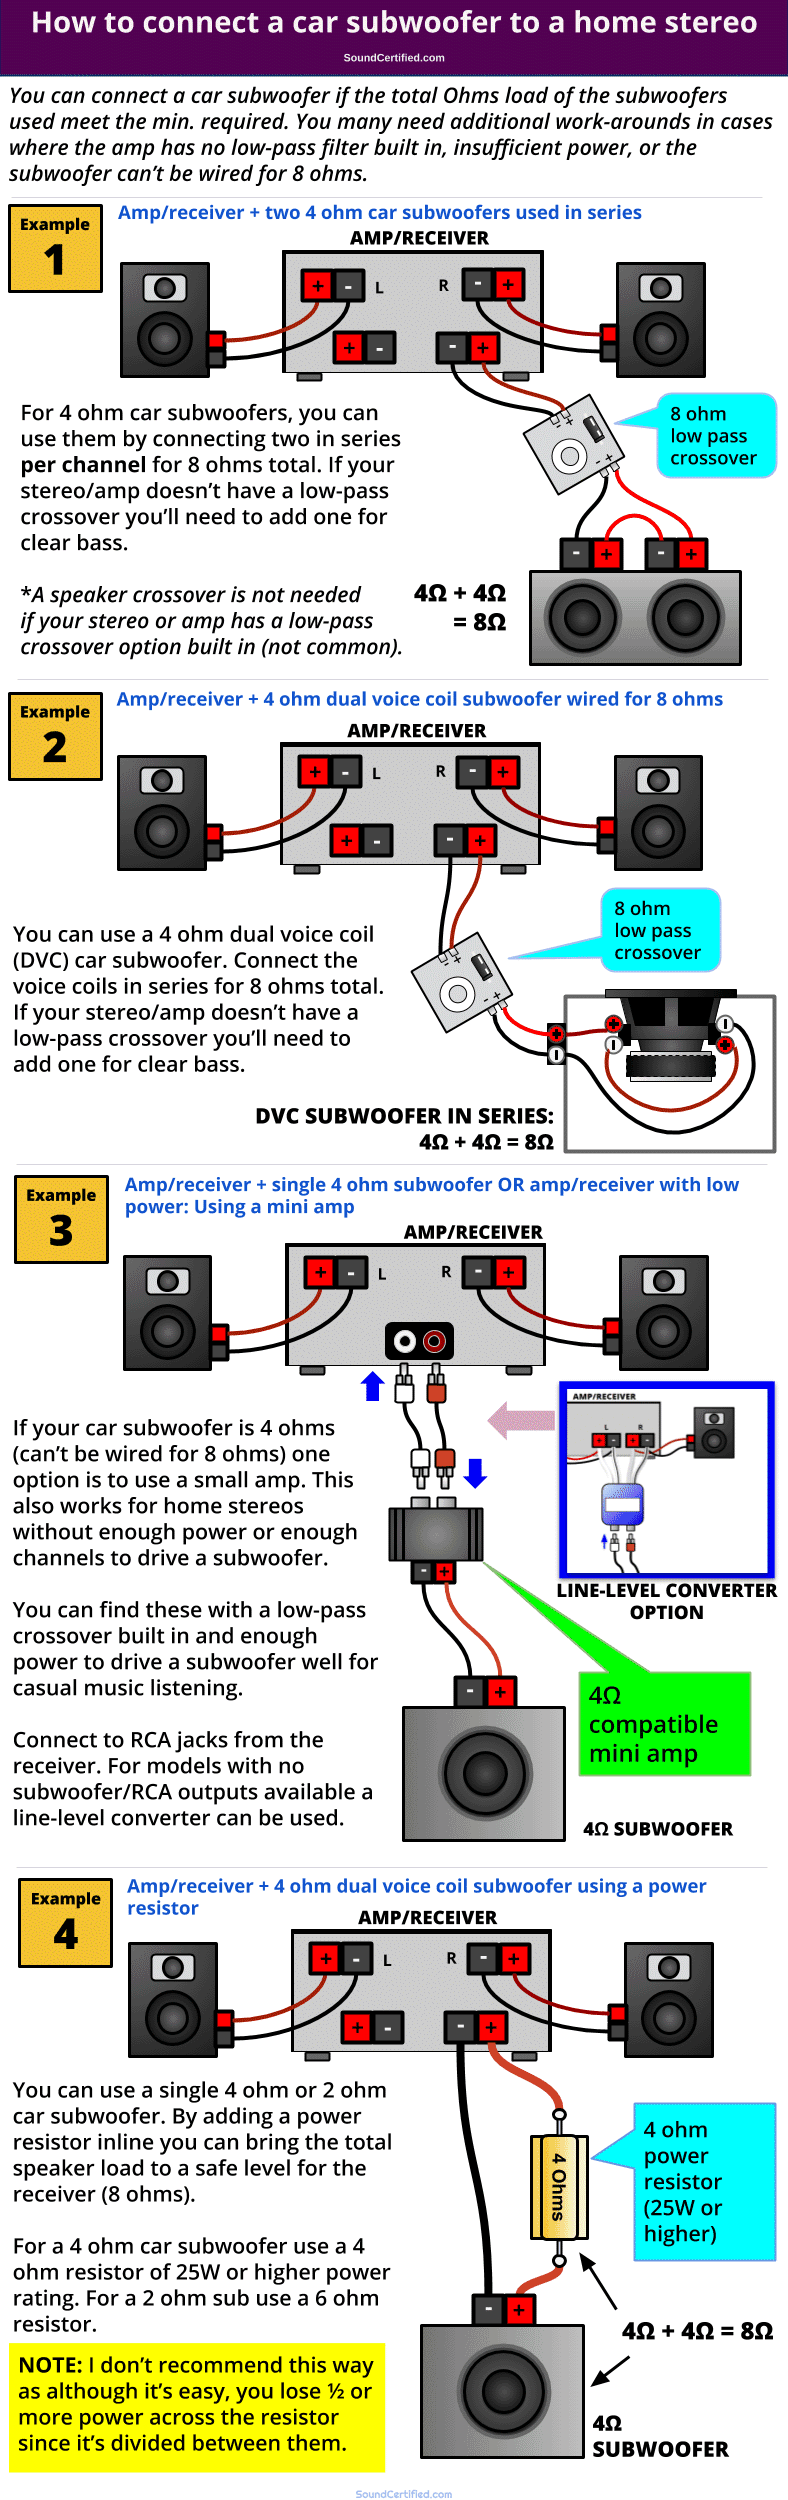 How to connect a car subwoofer to home stereo diagram